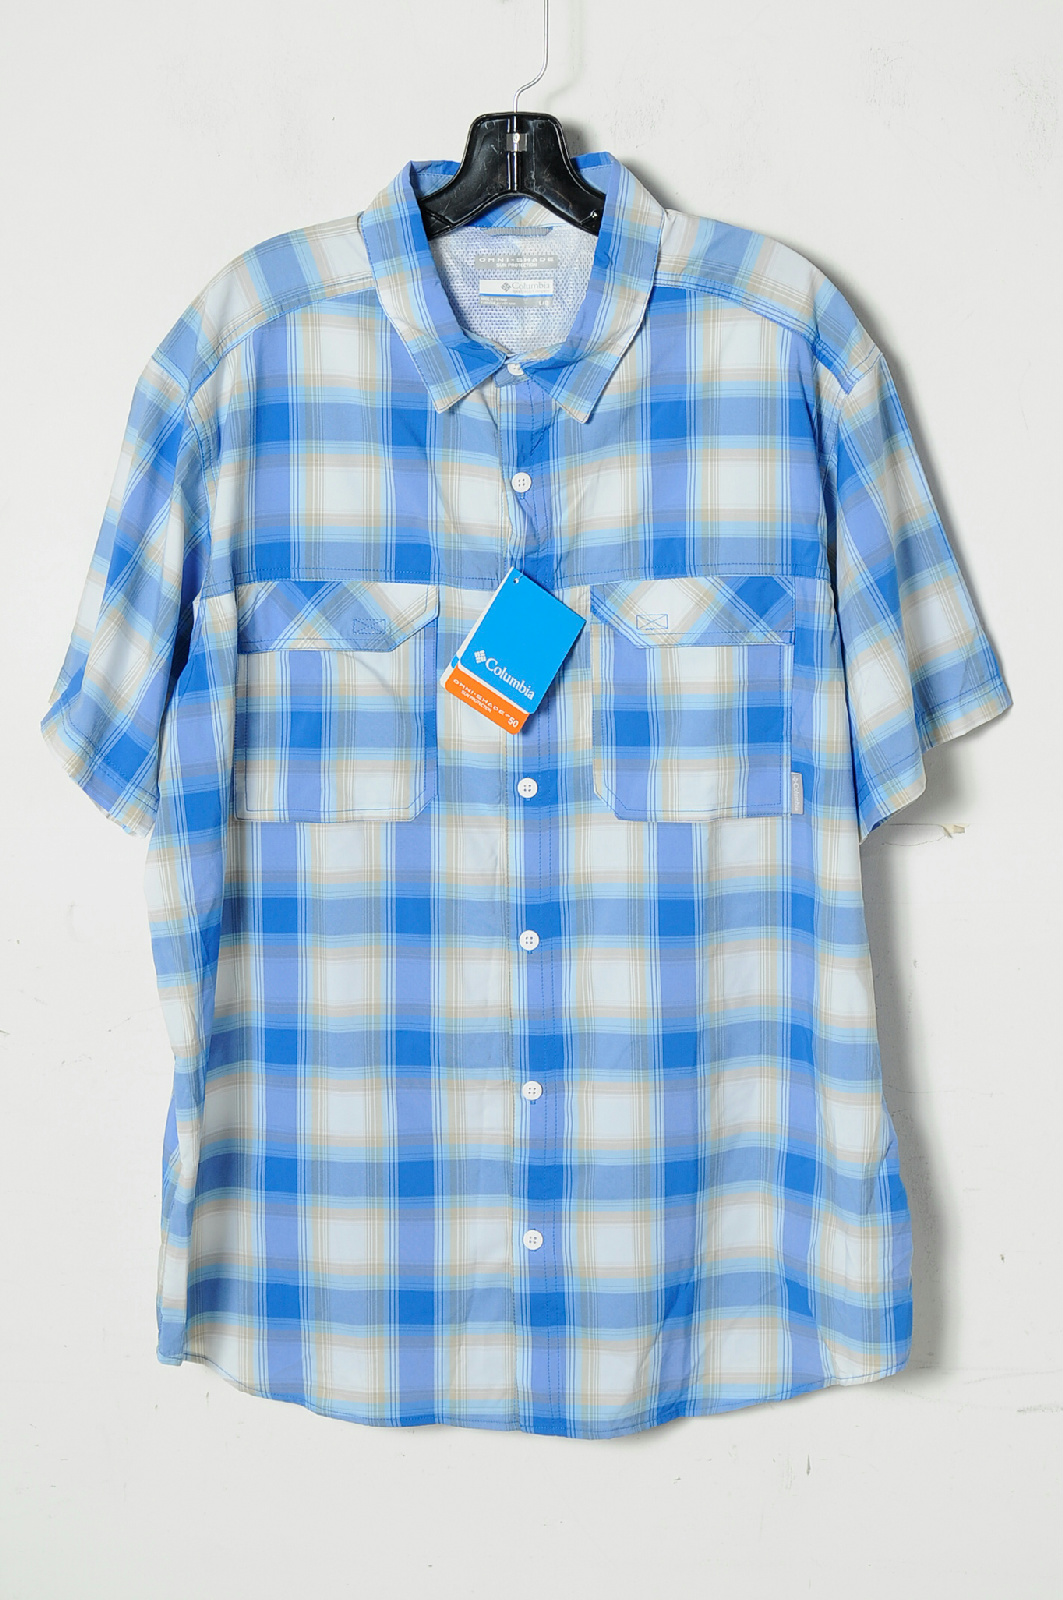 Nwt Columbia Multi Color Plaid Short Sleeve Button Down